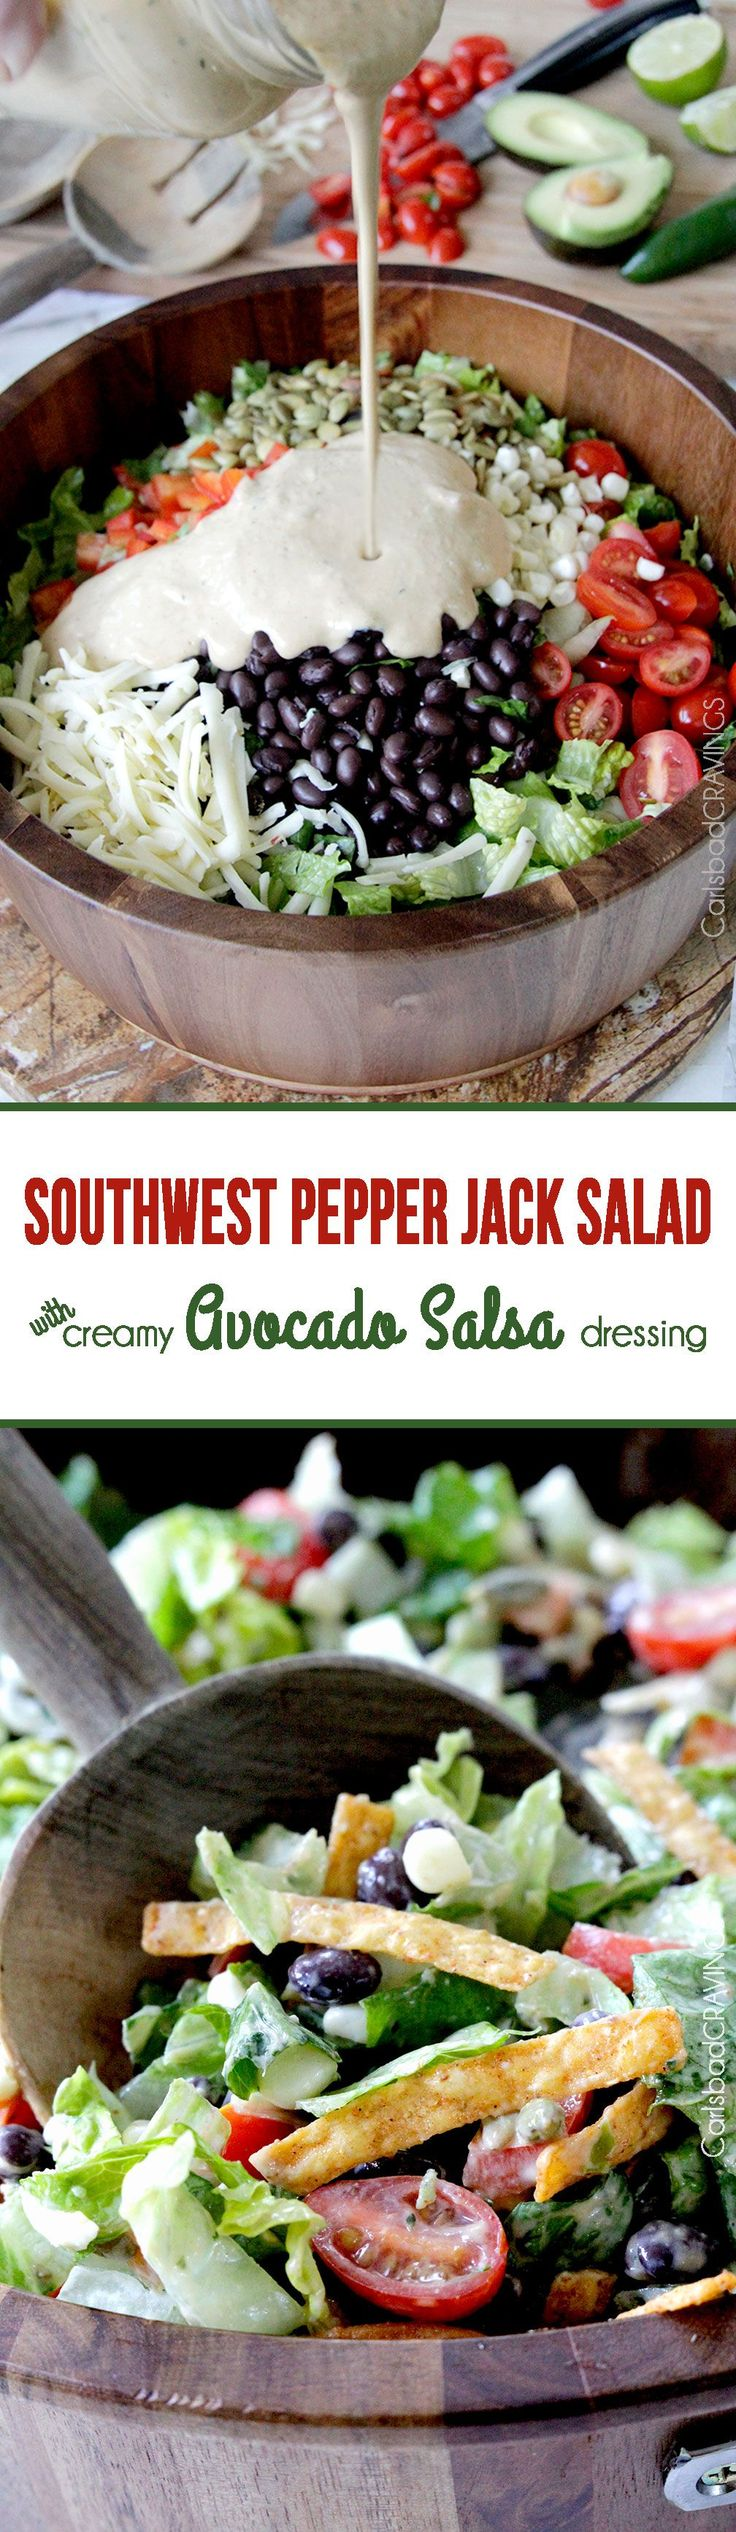 Southwest Pepper Jack Salad with Creamy Avocado Salsa Dressing will have you actually CRAVING salad! The dressing alone is worth making this!